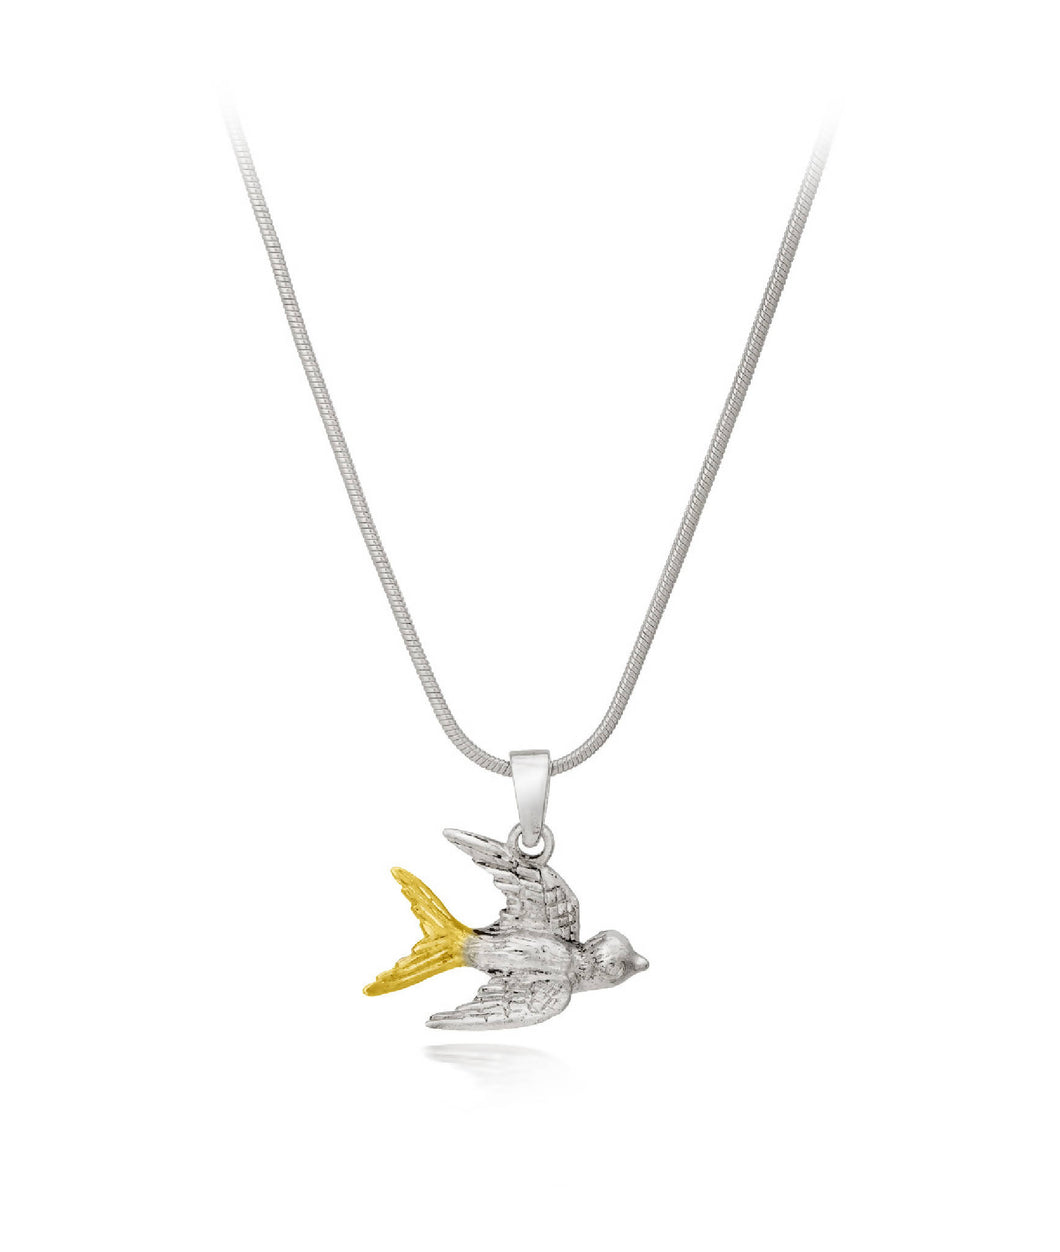 Wildlife Swallow Pendant with silver chain